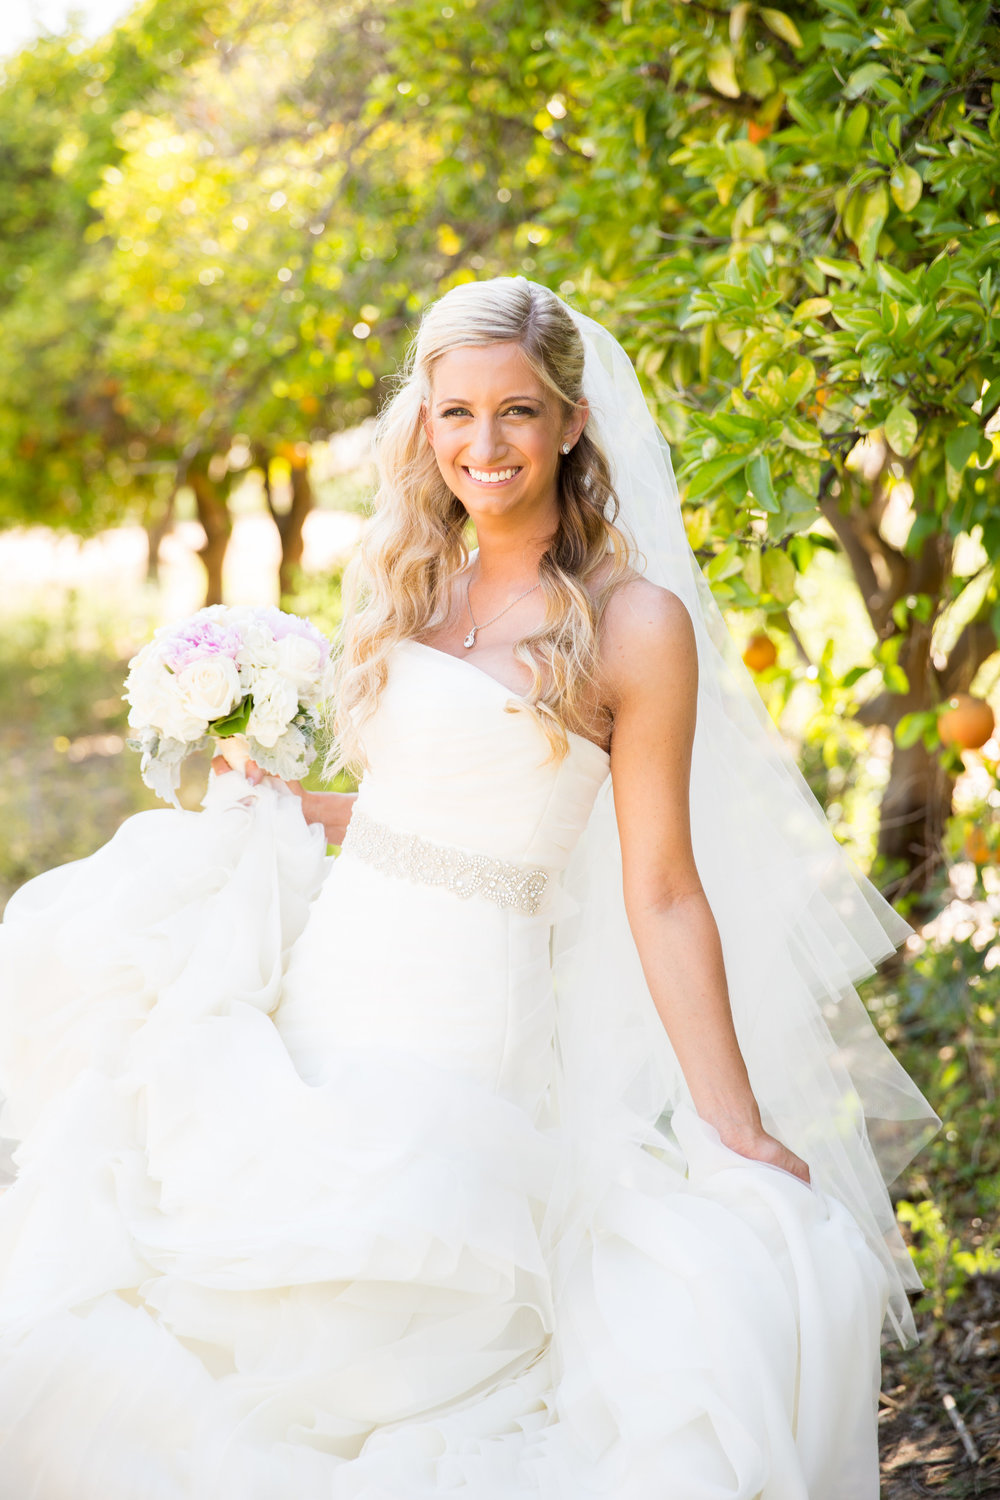 Temecula Wedding Hair and Makeup | Southern California Wedding | Temecula Winery Wedding